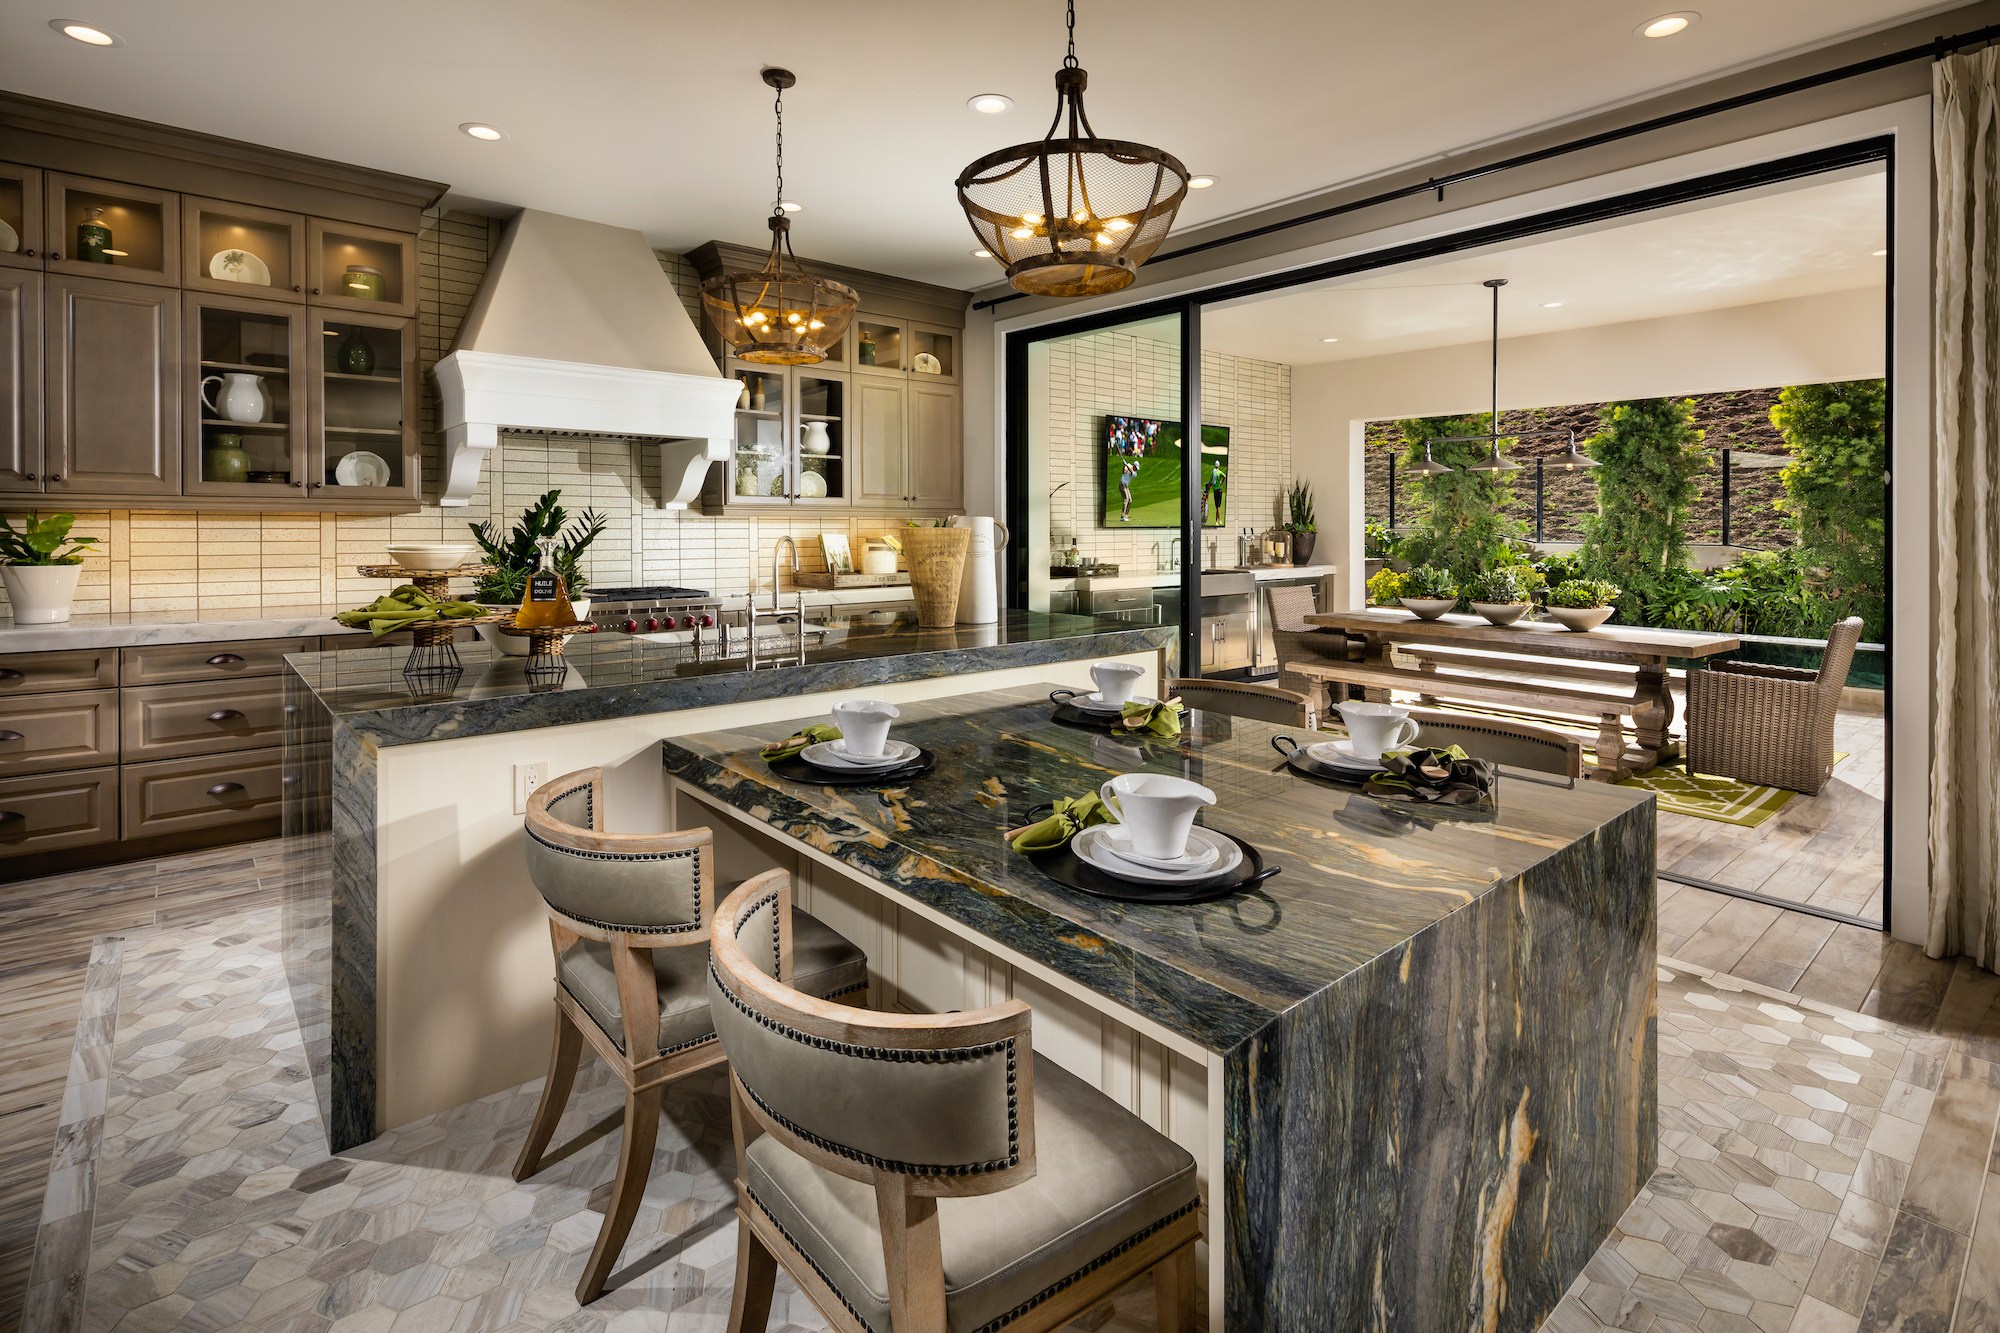 kitchen island home design | 25 Luxury Kitchen Ideas for Your Dream Home | Build Beautiful